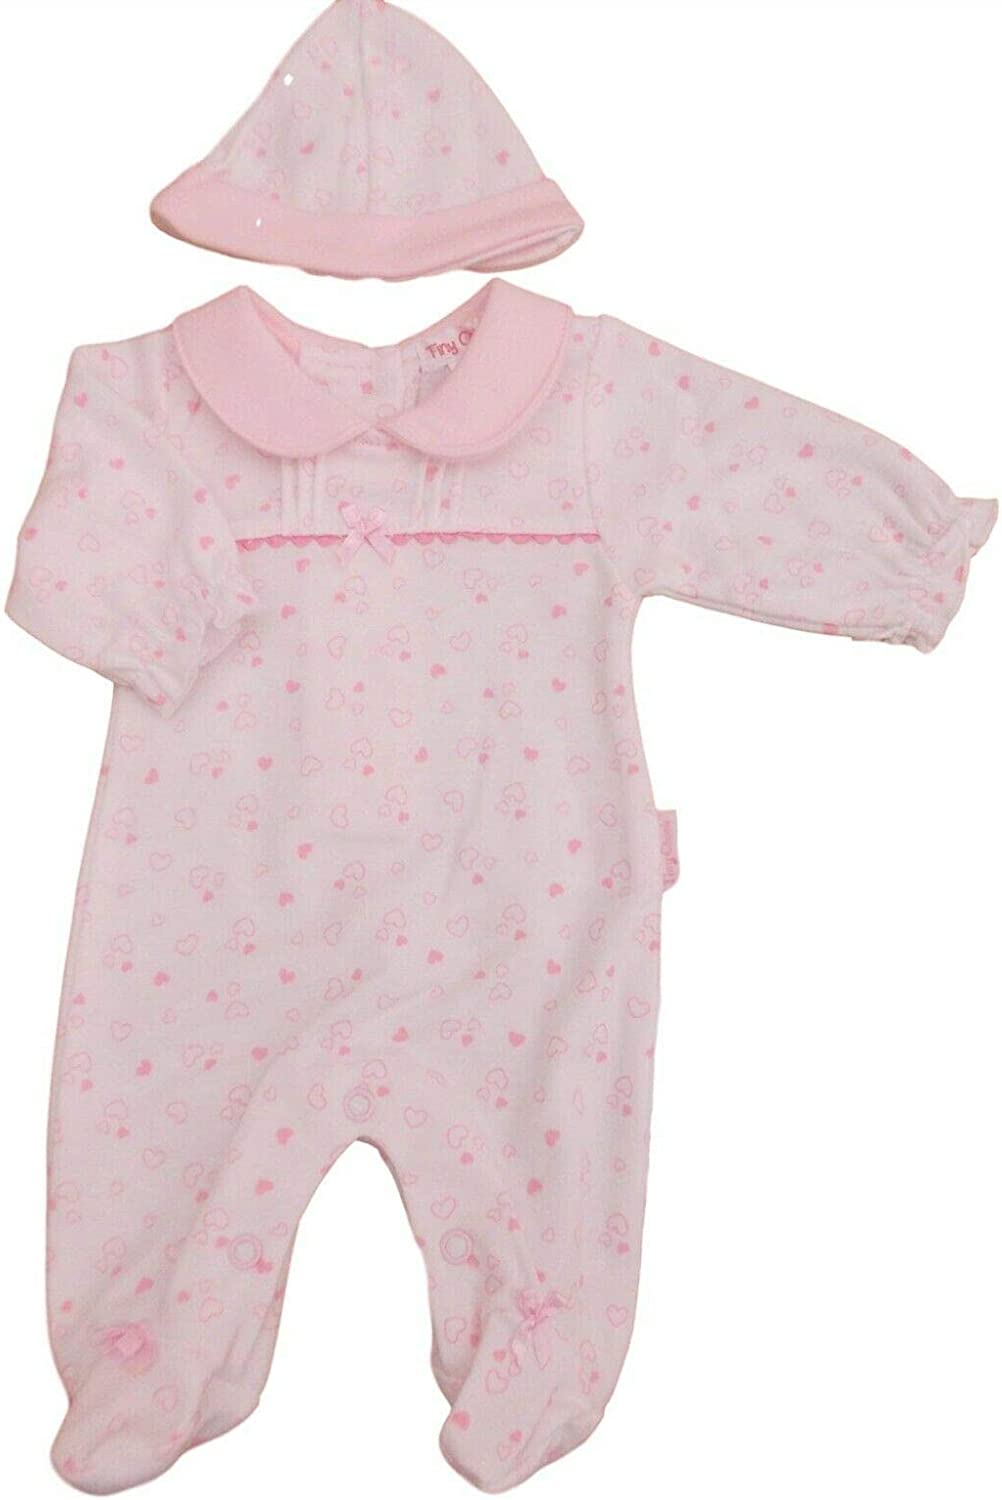 Little Chick with Tags Tiny Premature Preemie Baby Girls Sleepsuit /& hat Clothes